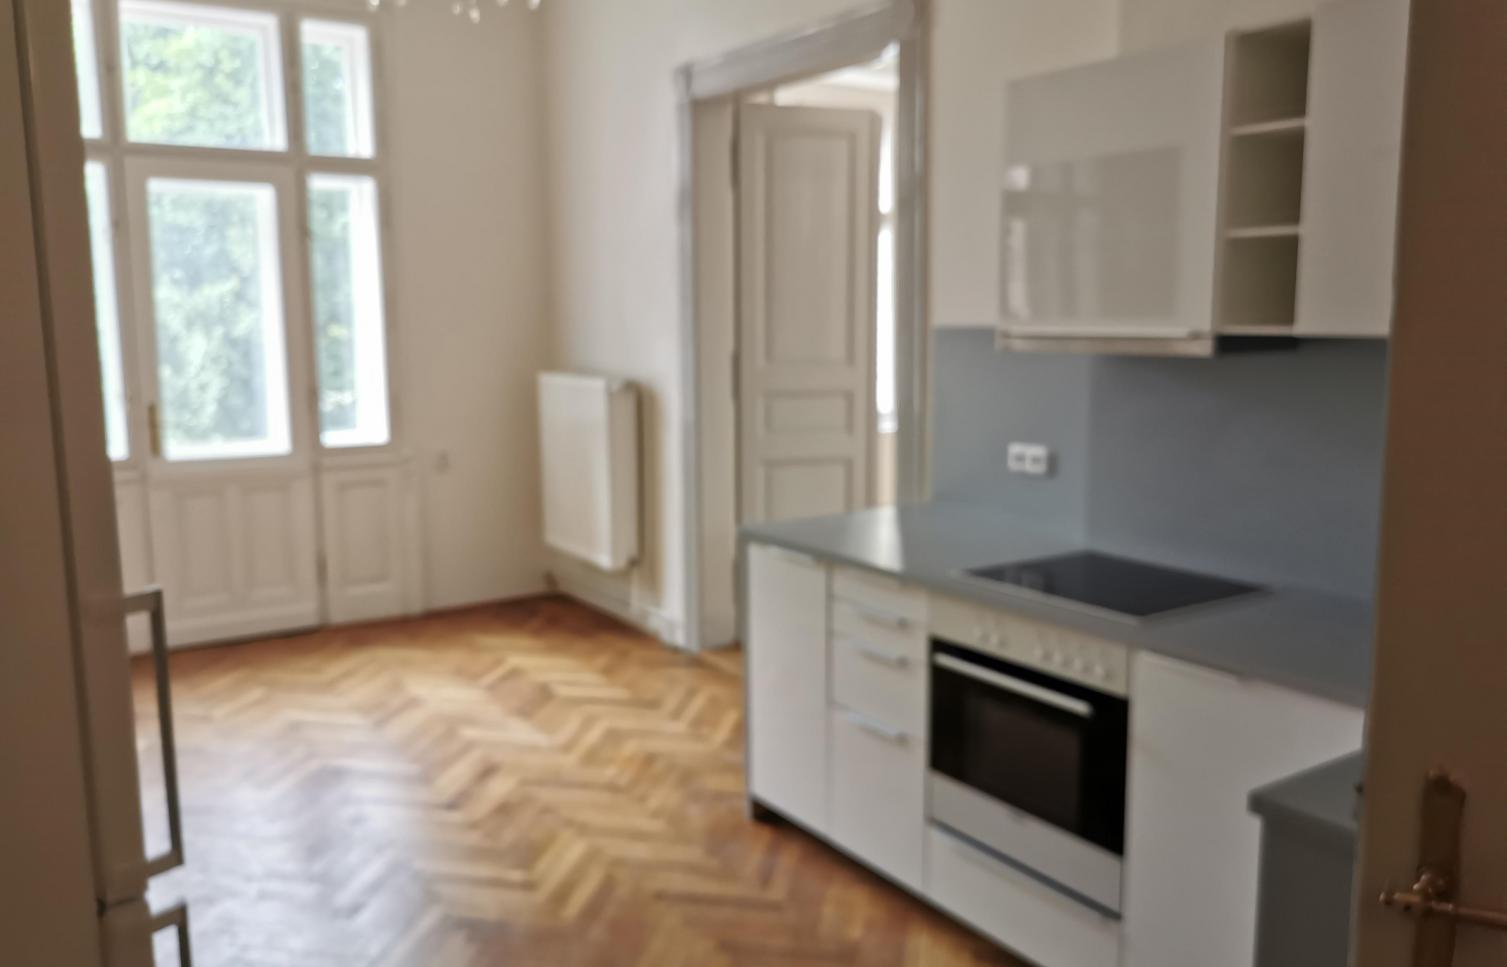 APARTMENT FOR RENT, street Dienzenhoferovy sady, Praha 5